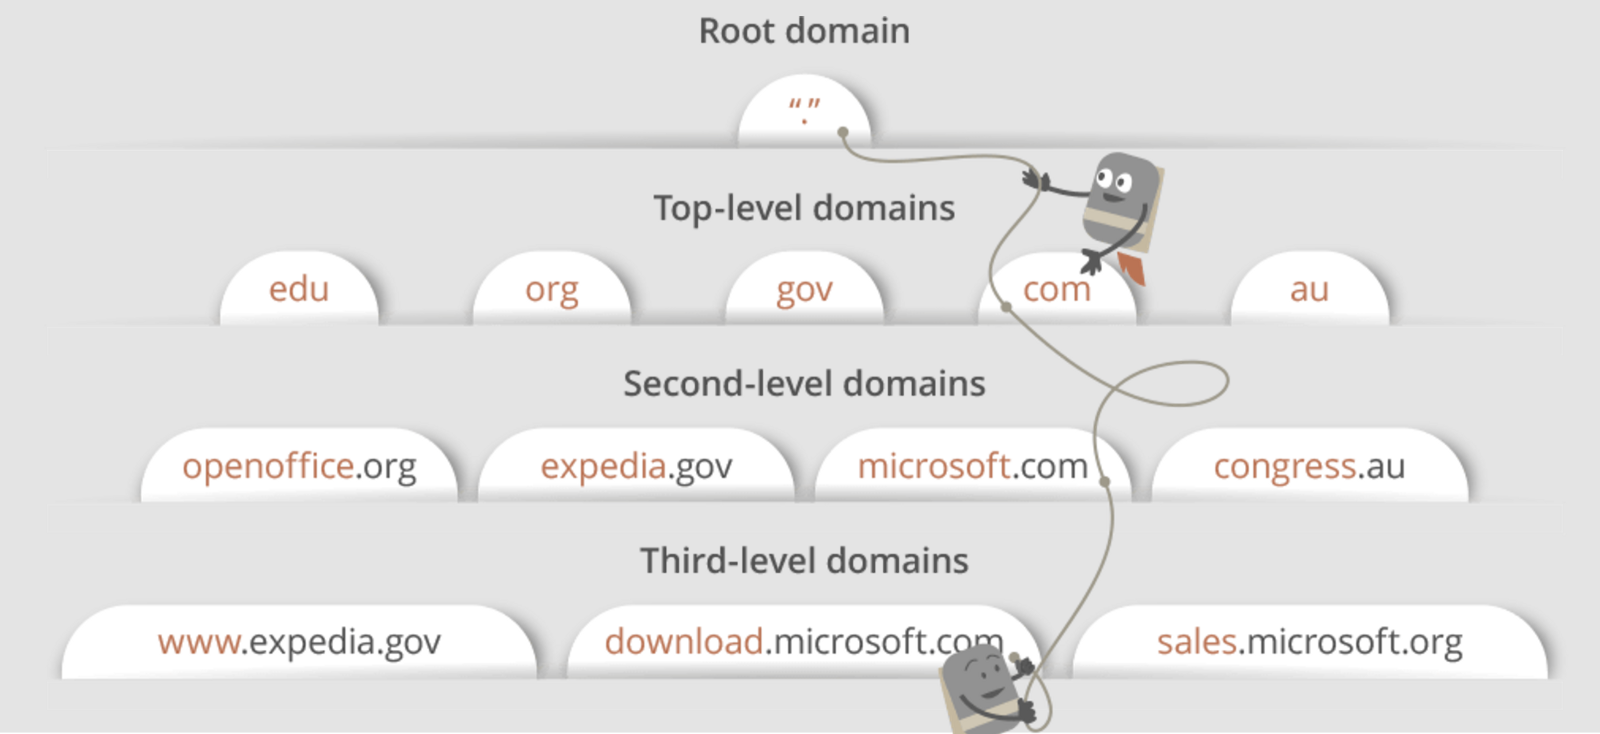 What Happens When You Type An Url In The Browser And Press Enter Let39s Have A Look At Basic Wiring Diagram Describing Threeway Https Webhostinggeekscom Guides Dns